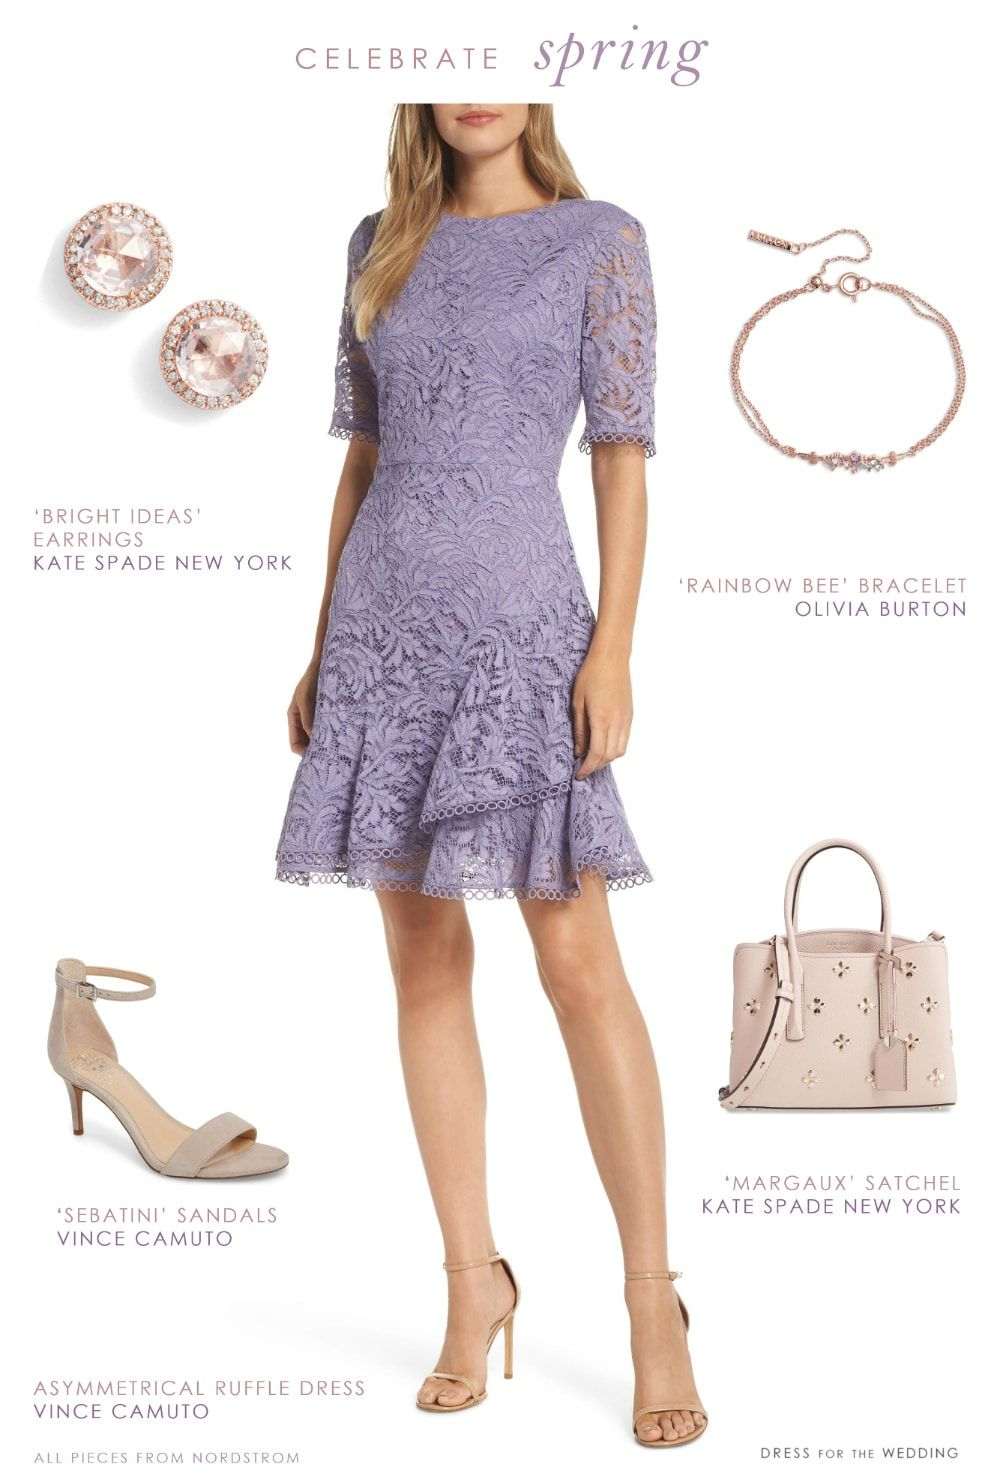 Cute Outfit To Wear For Easter Or To Spring Weddings Lavender Lace Dress For Spring Dresses Eastero Lace Dress Outfit Celebrity Dresses Lavender Lace Dress